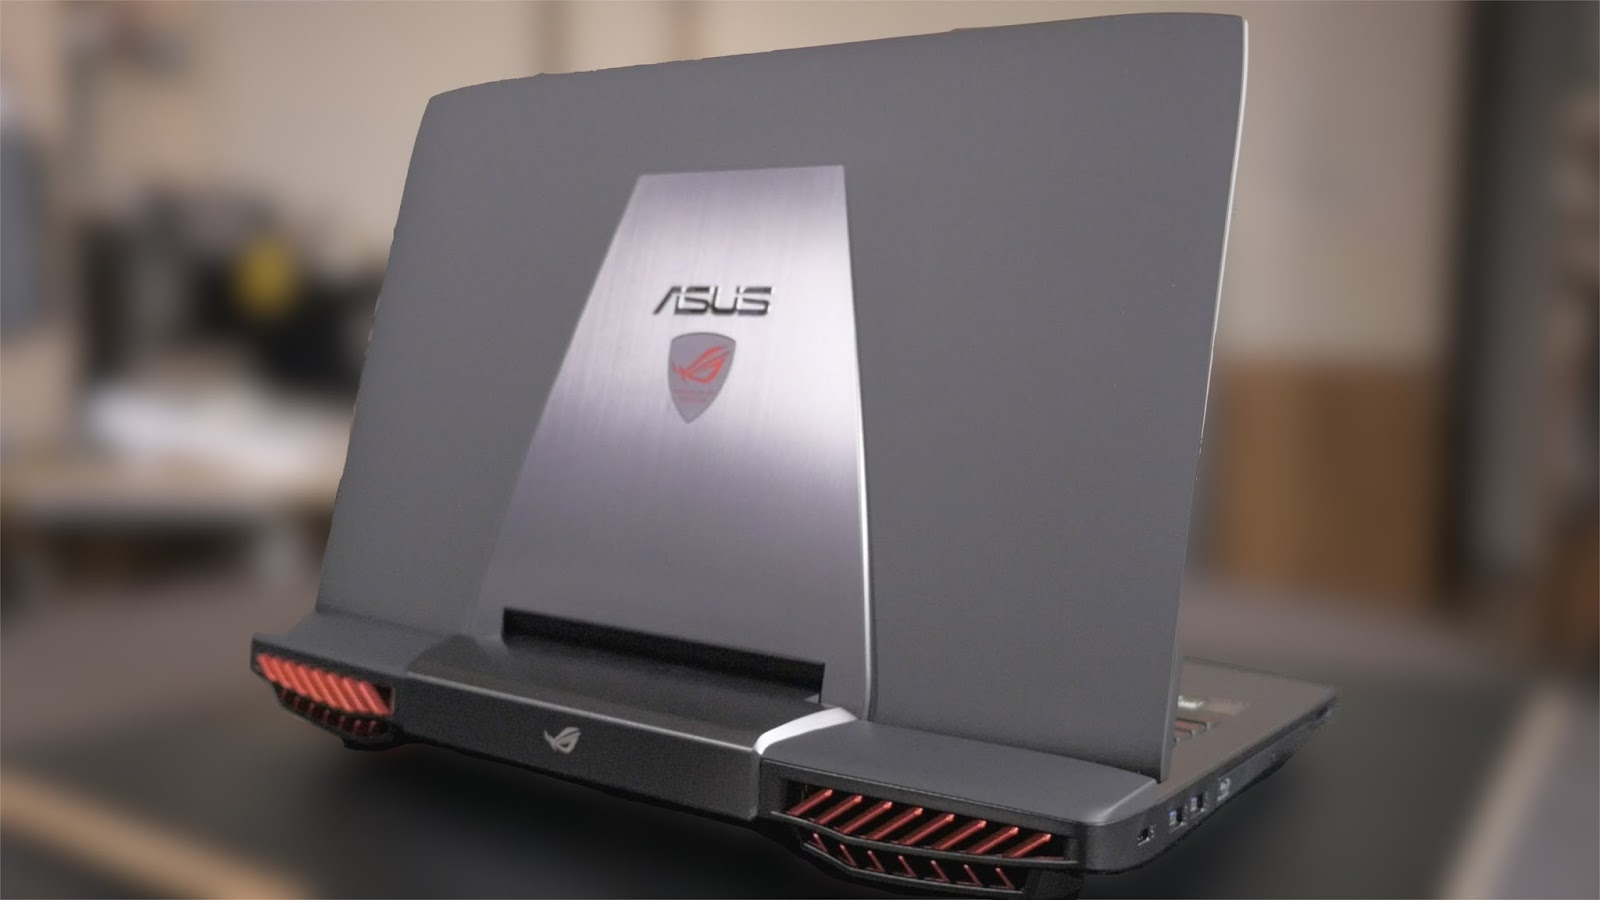 Download Driver: ASUS ROG G751JY Genesys Card Reader